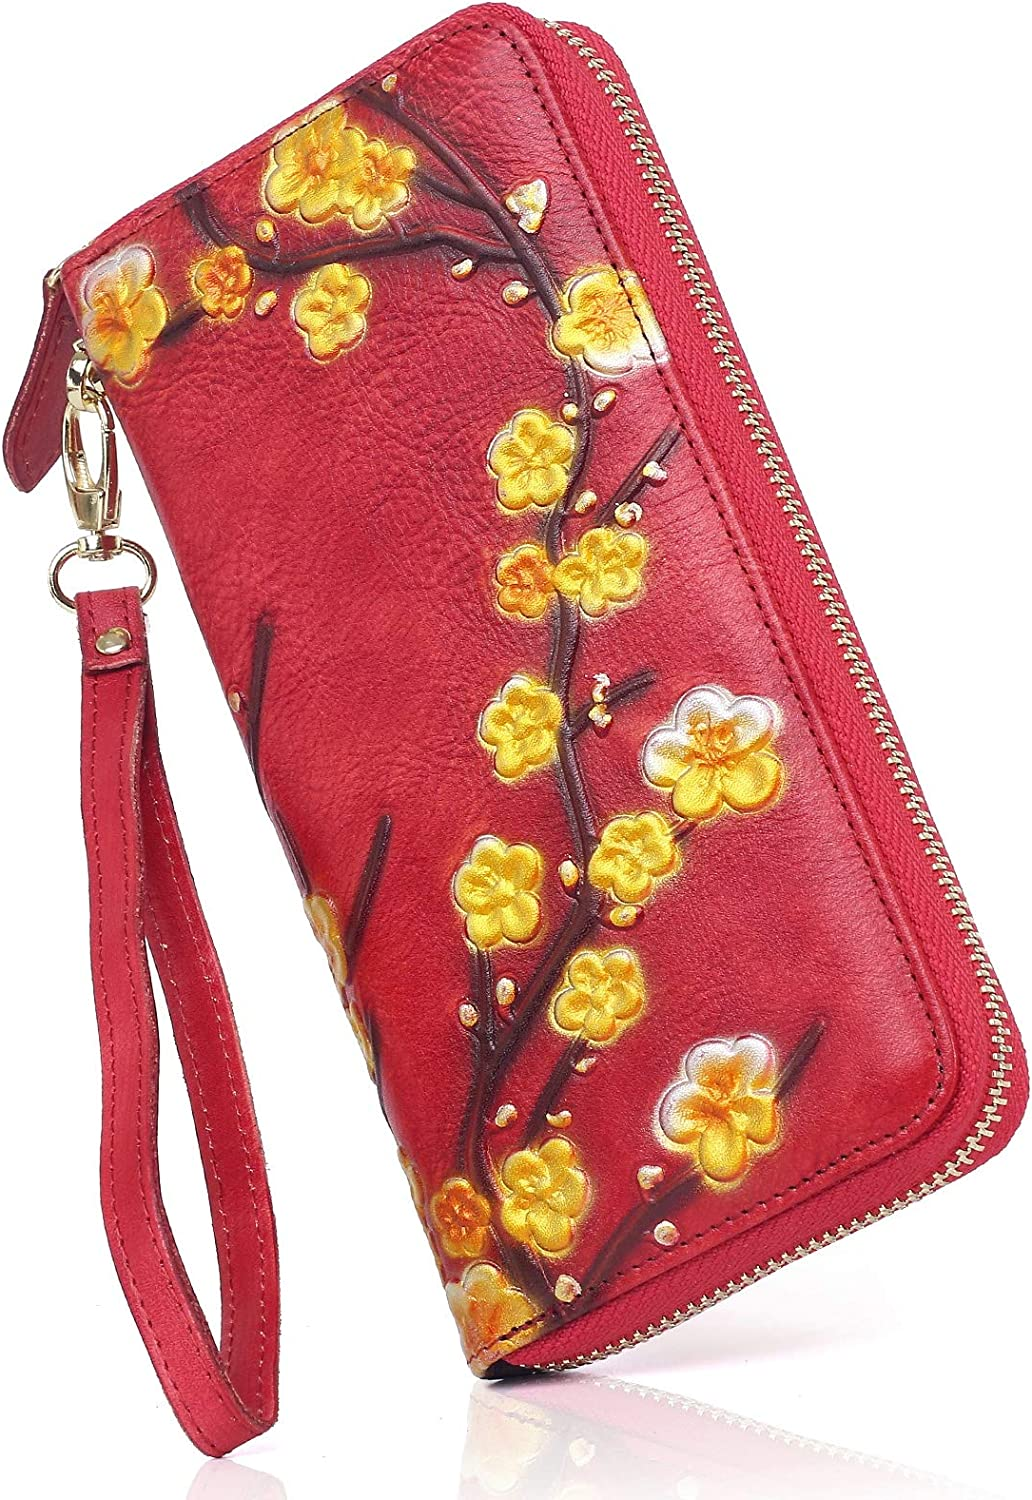 APHISON Women RFID Leather Wallet Wr Ladies Painted Ranking TOP12 Flowers Max 55% OFF Hand